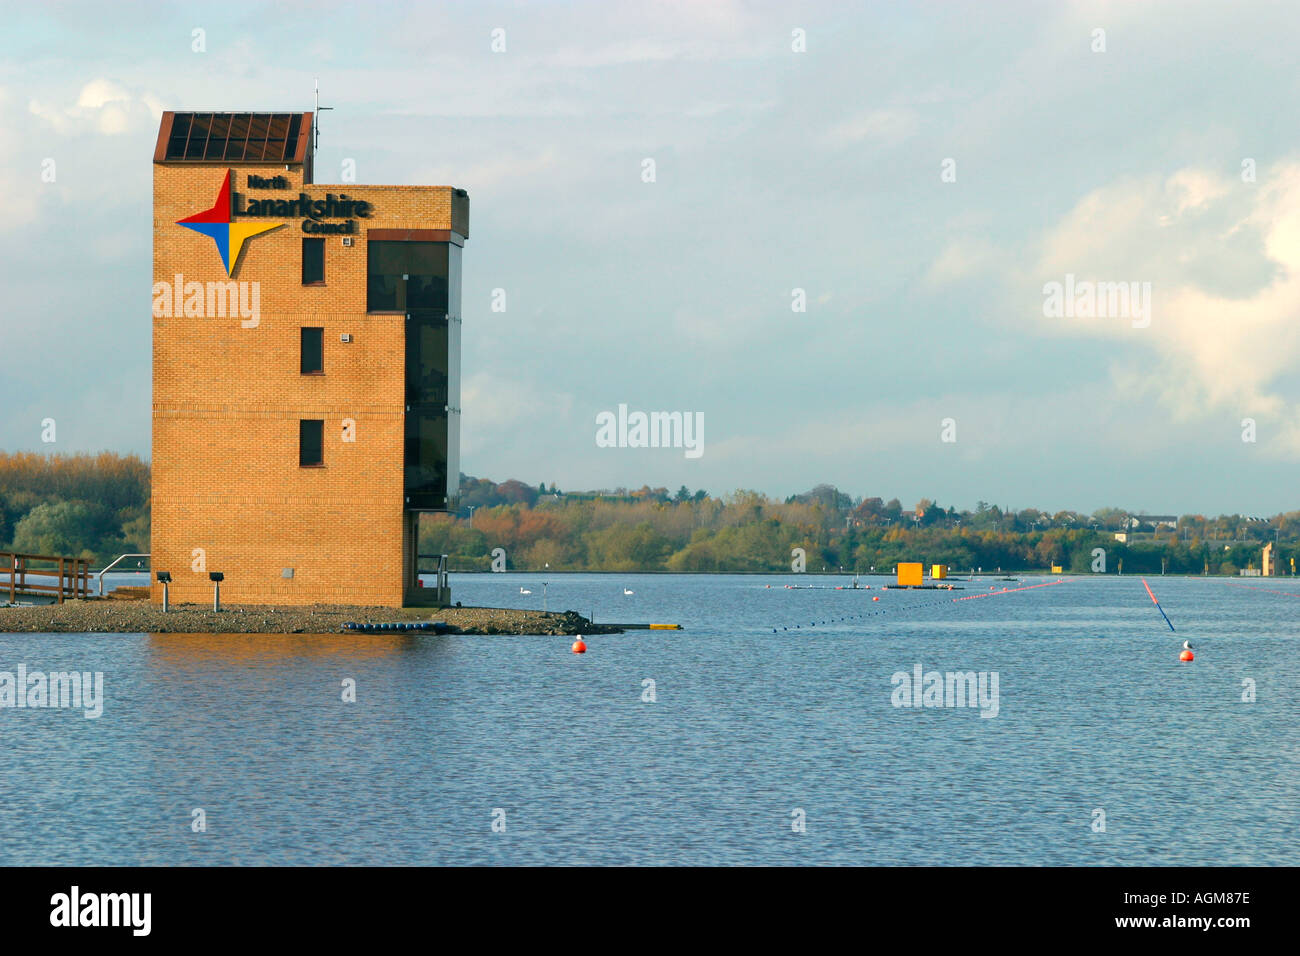 National Rowing Centre Strathclyde Park Motherwell Scotland Stock Photo